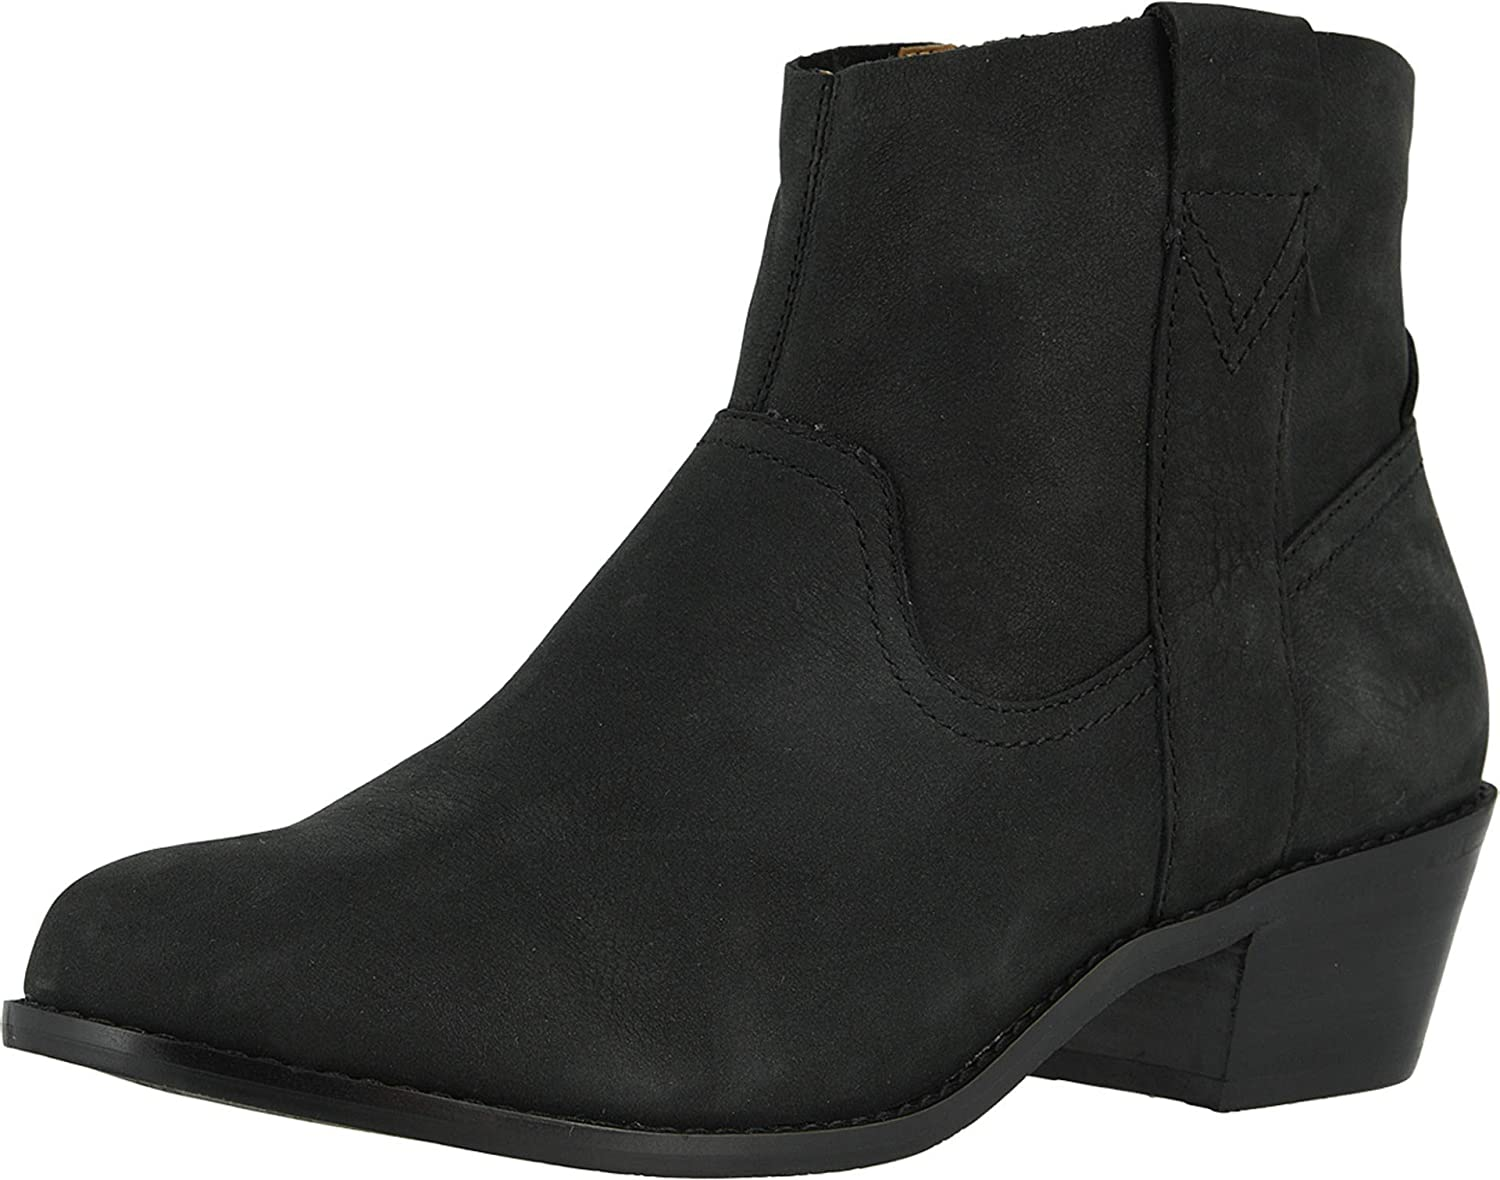 Vionic Women's Joy Roselyn Ankle Booties - Ladies Comfortable Western Walking Boots with Concealed Orthotic Arch Support